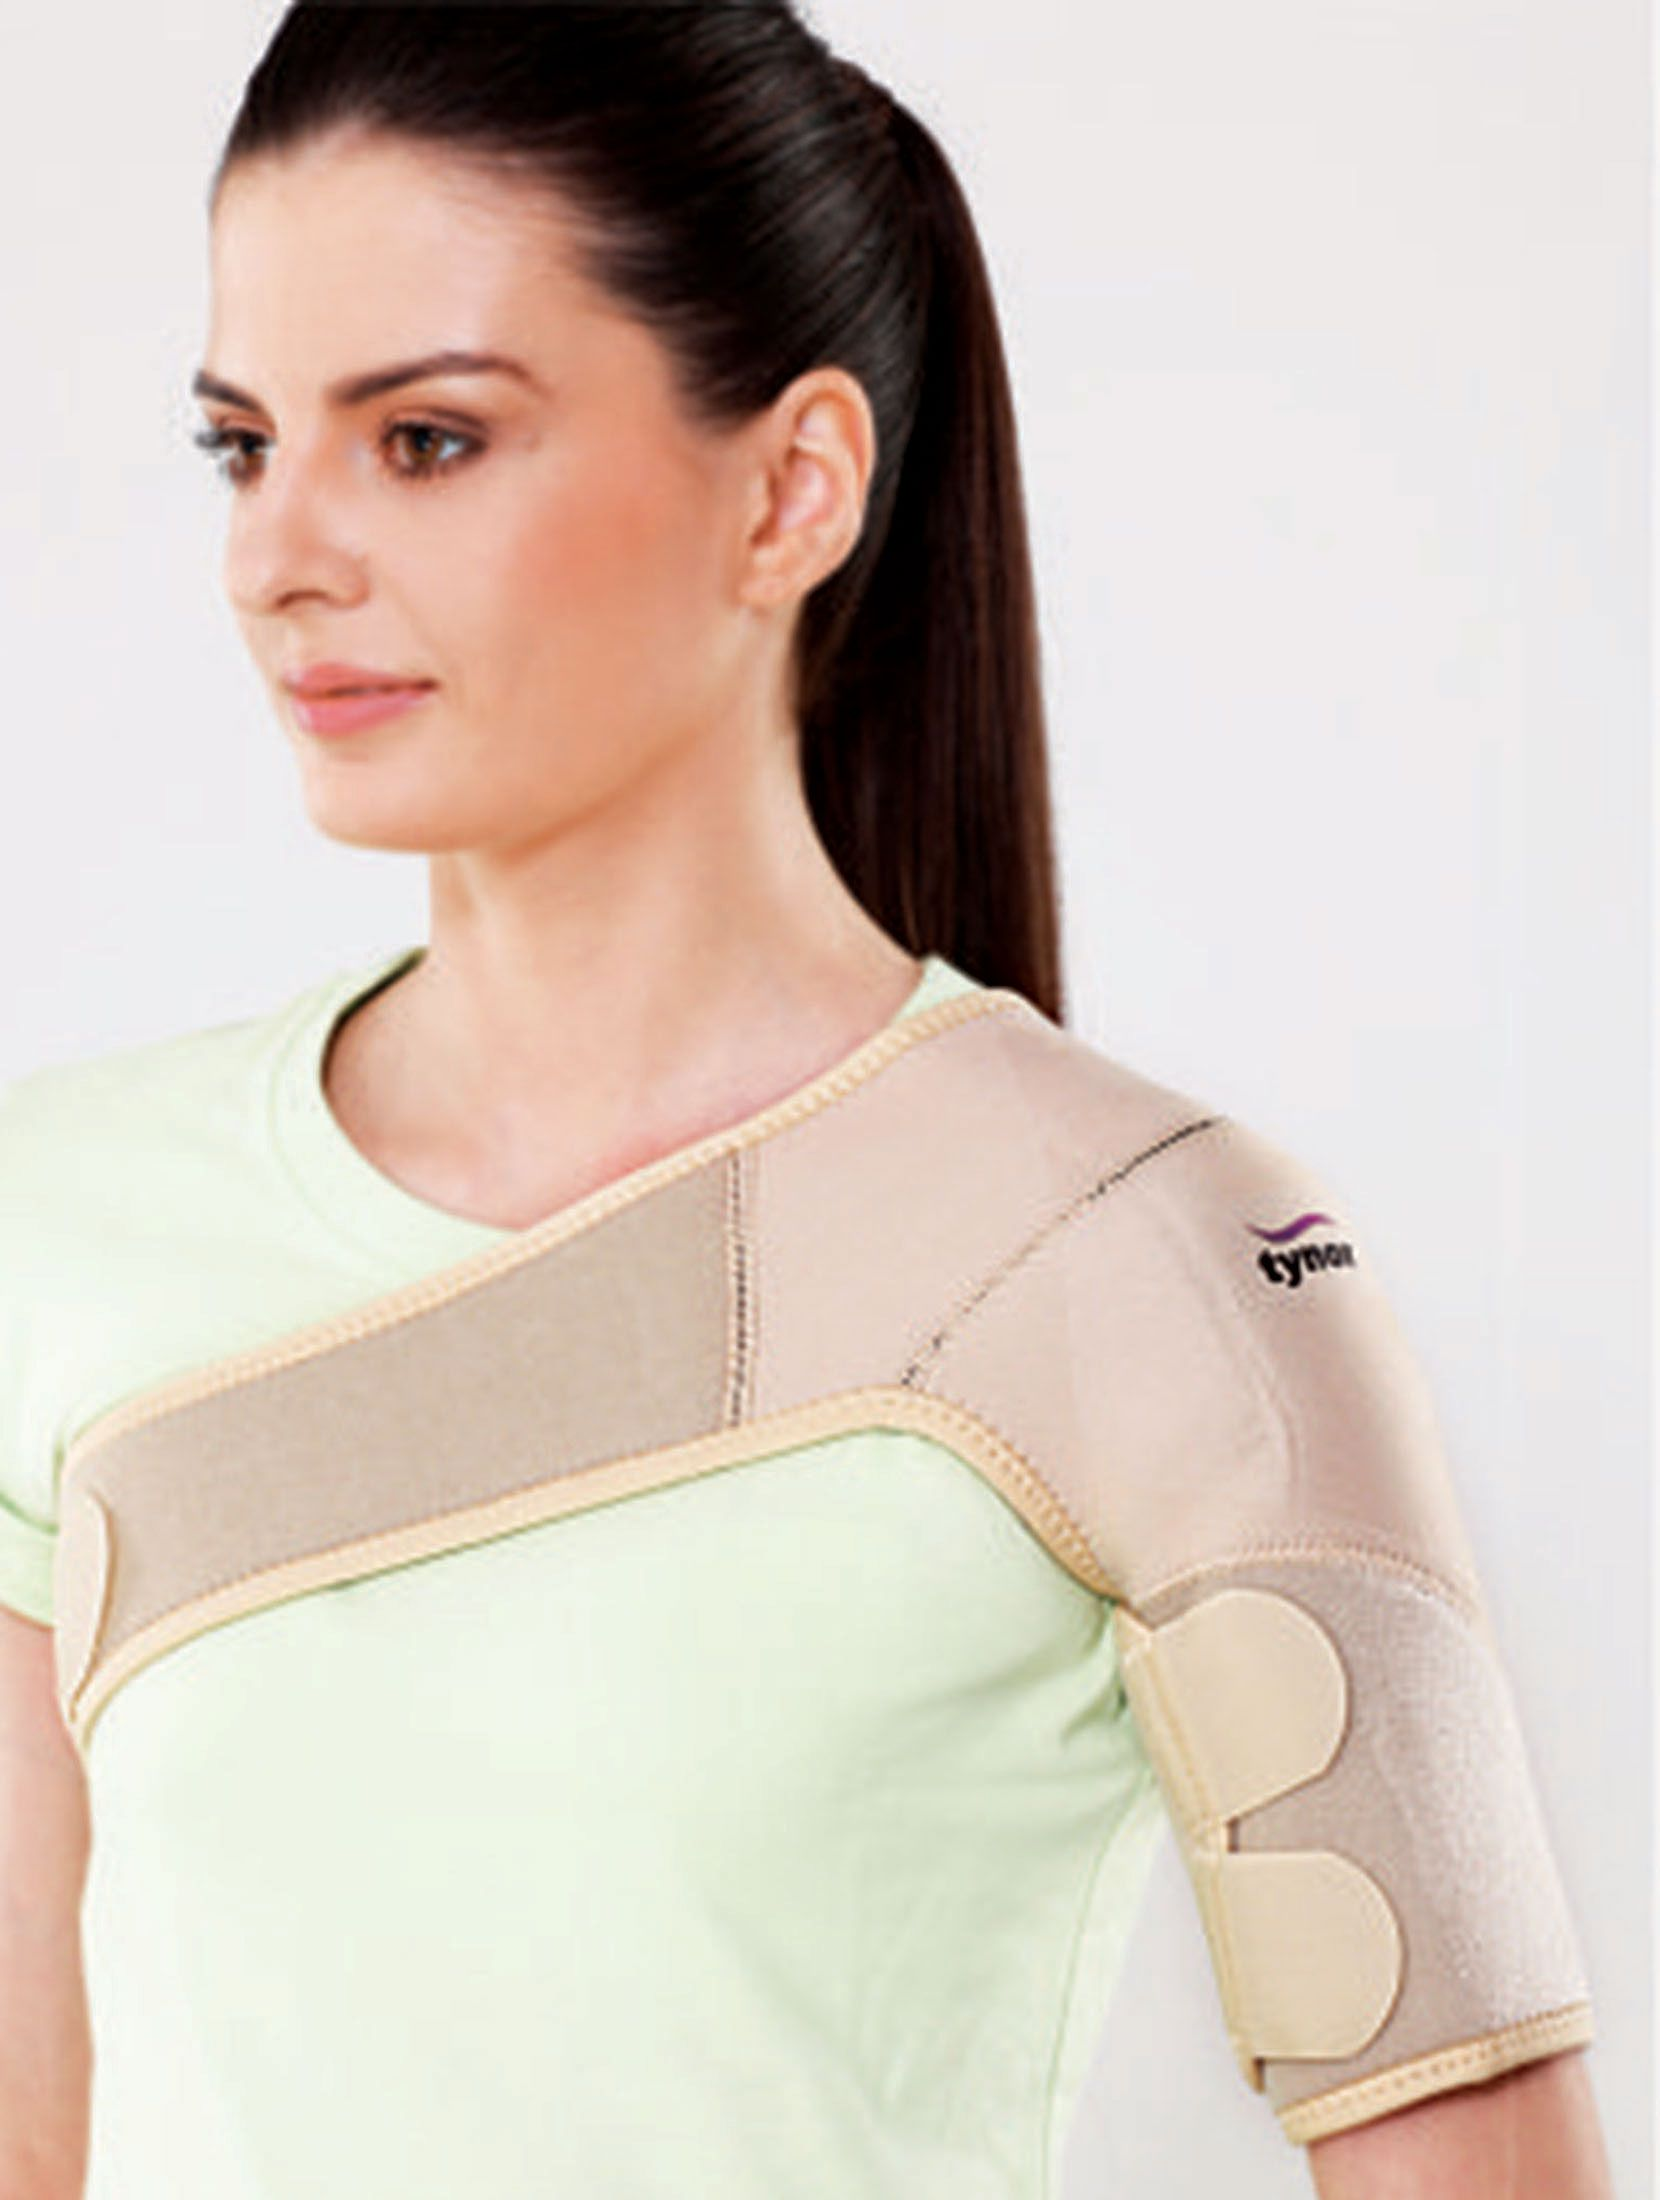 Tynor Shoulder Support( Neo) Special Size  (36